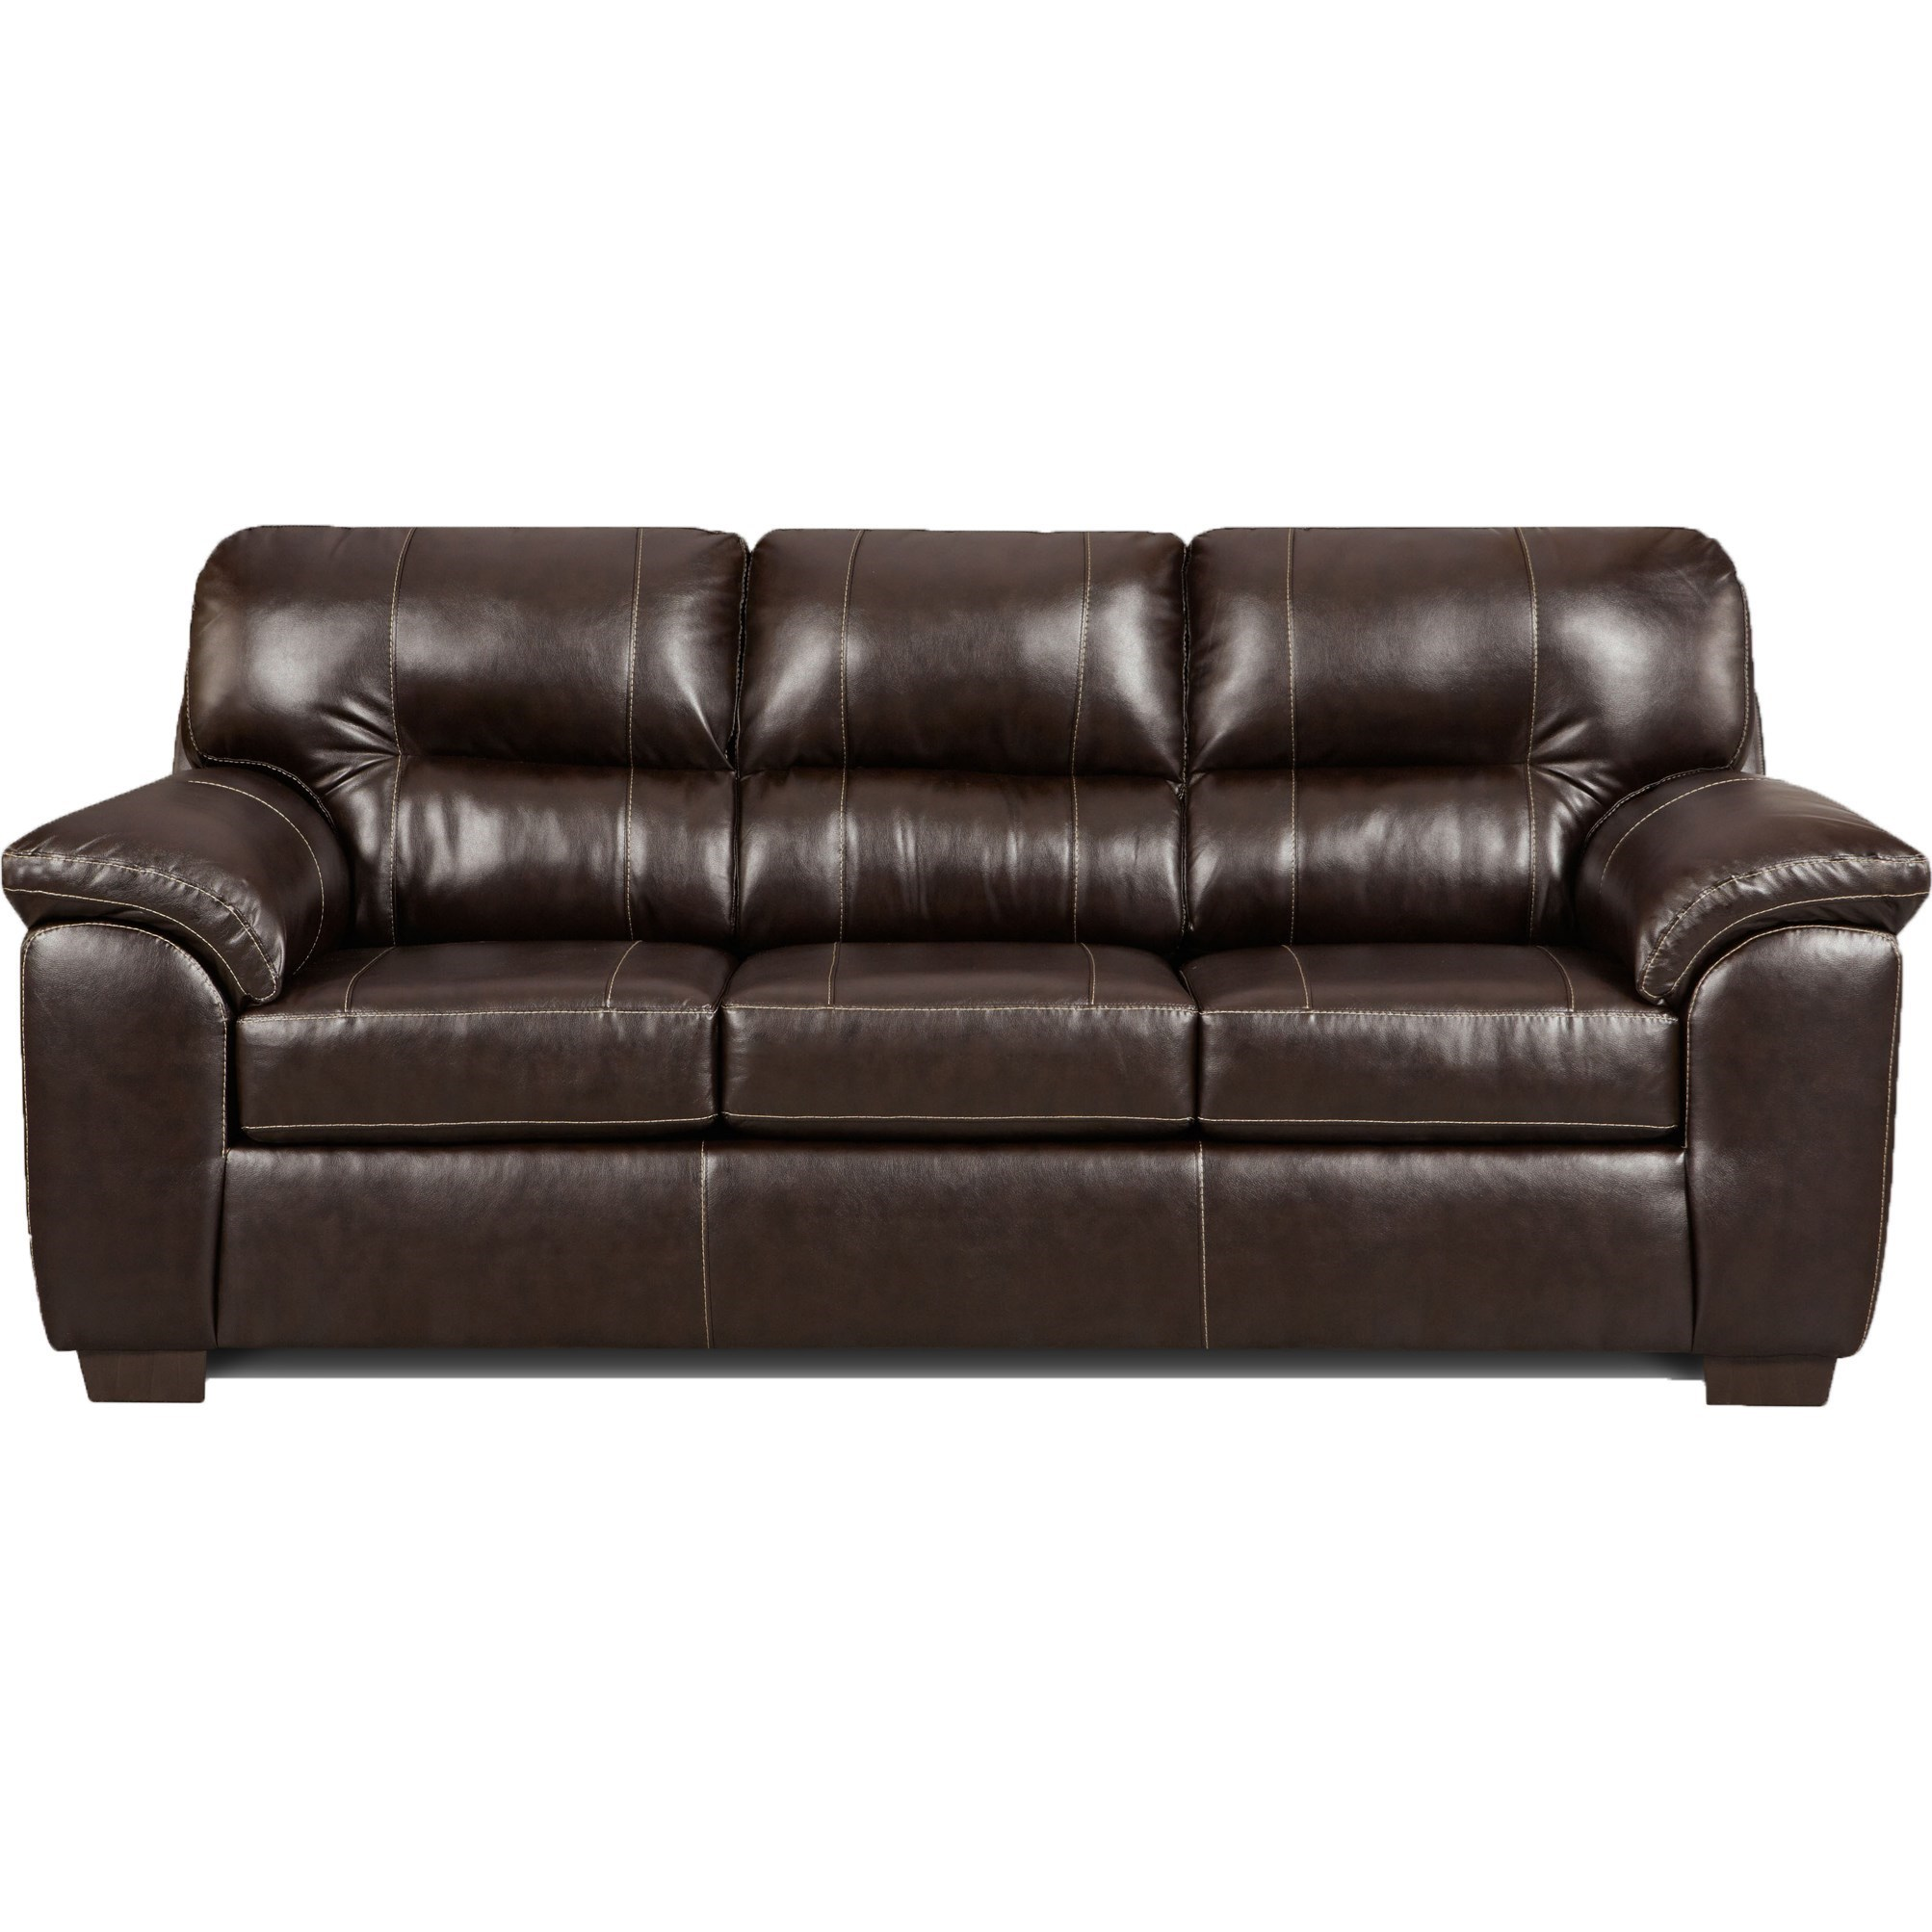 Sofa Affordable Affordable Furniture 5950 Silverton Pewter